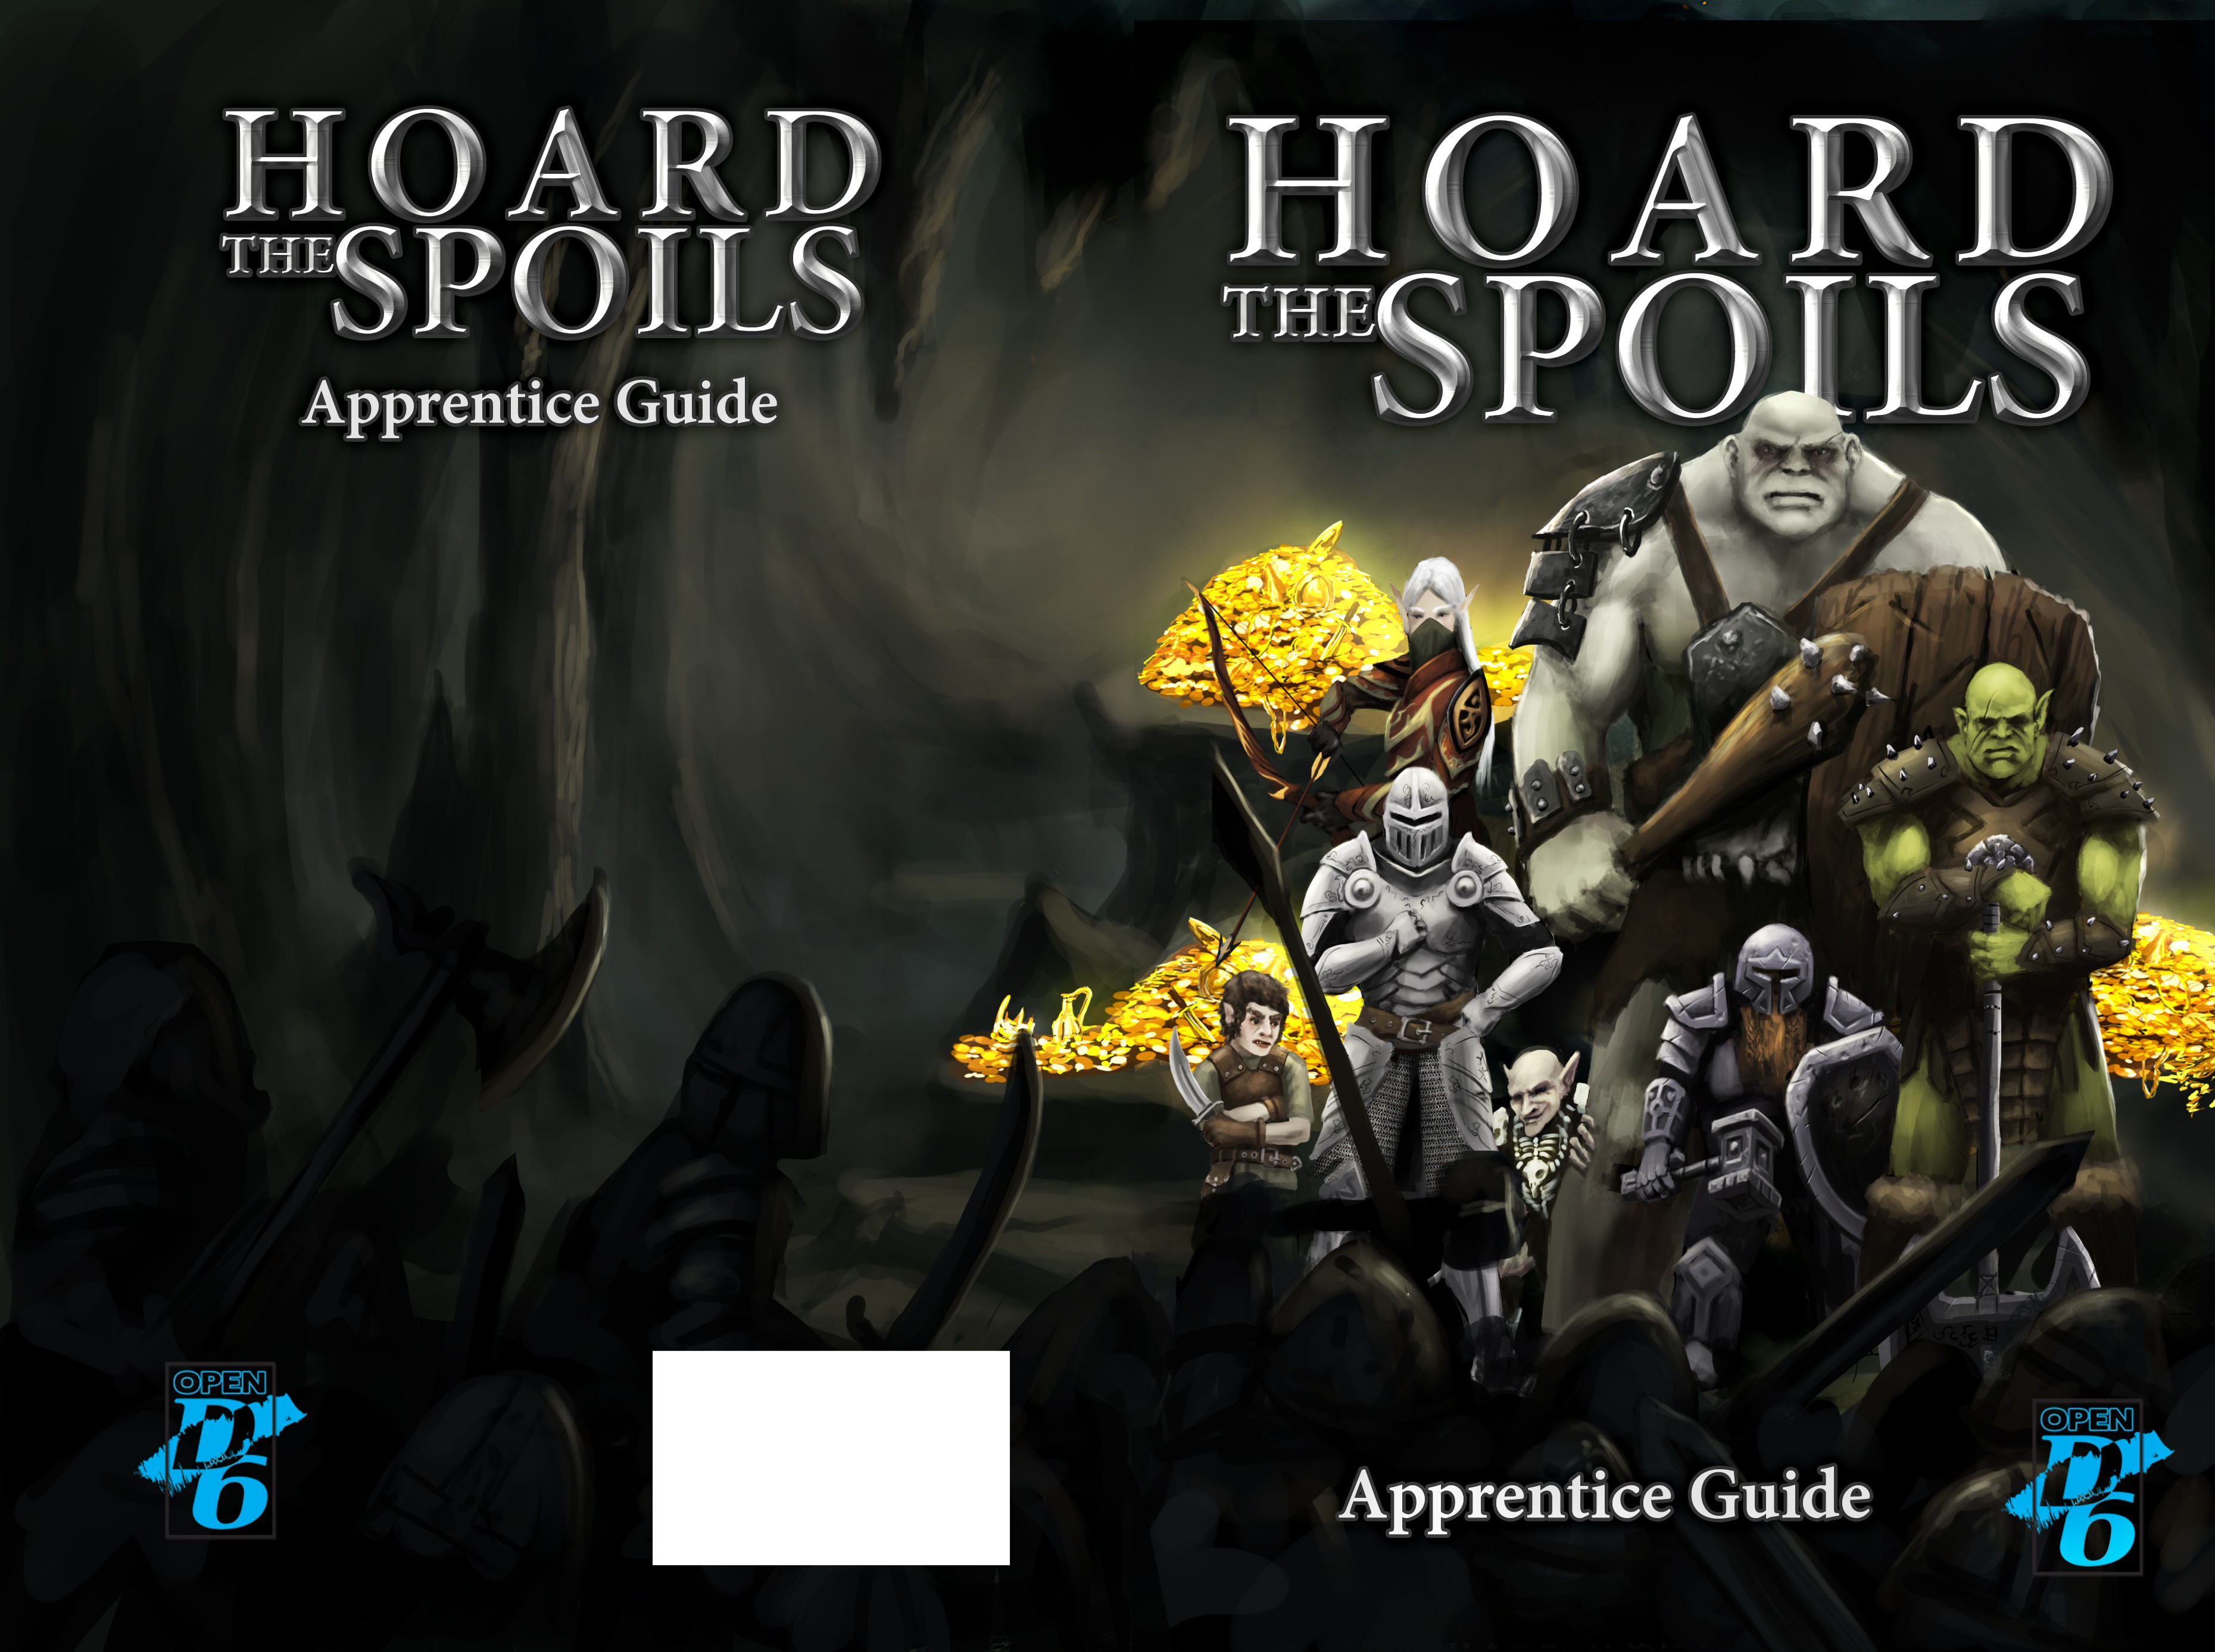 Hoard The Spoils Fantasy Role-playing game book cover